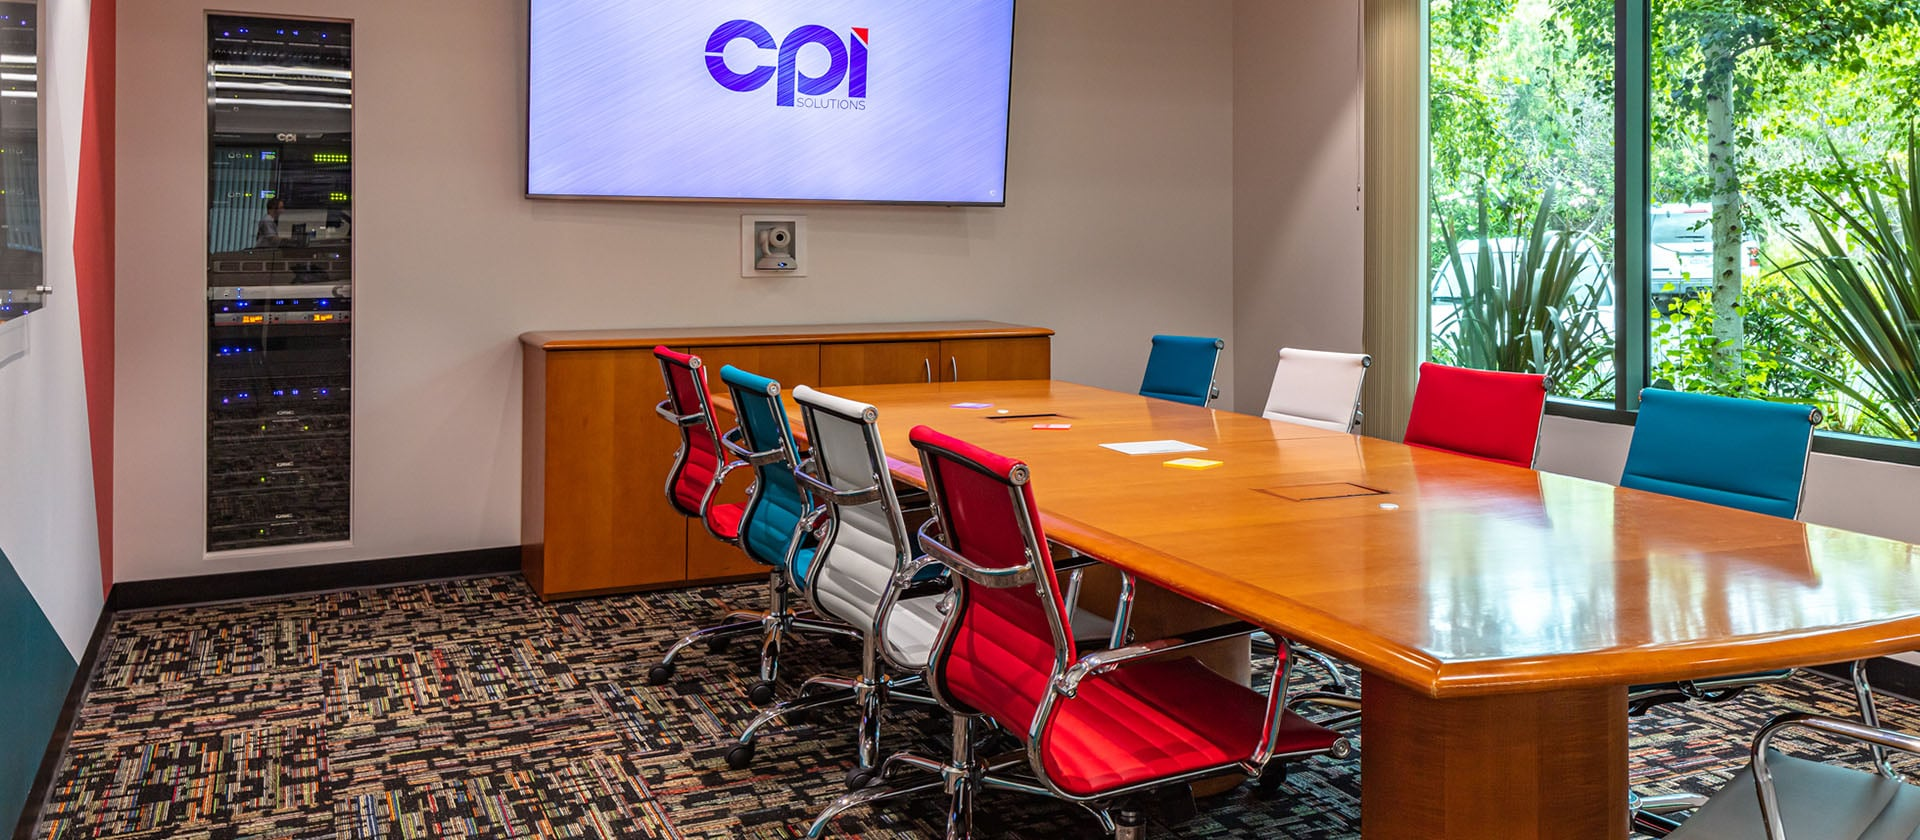 Microsoft Teams Rooms, AV Systems, Custom conference rooms, LifeSize video conferencing and presentation systems for commercial audio visual and Crestron solutions.